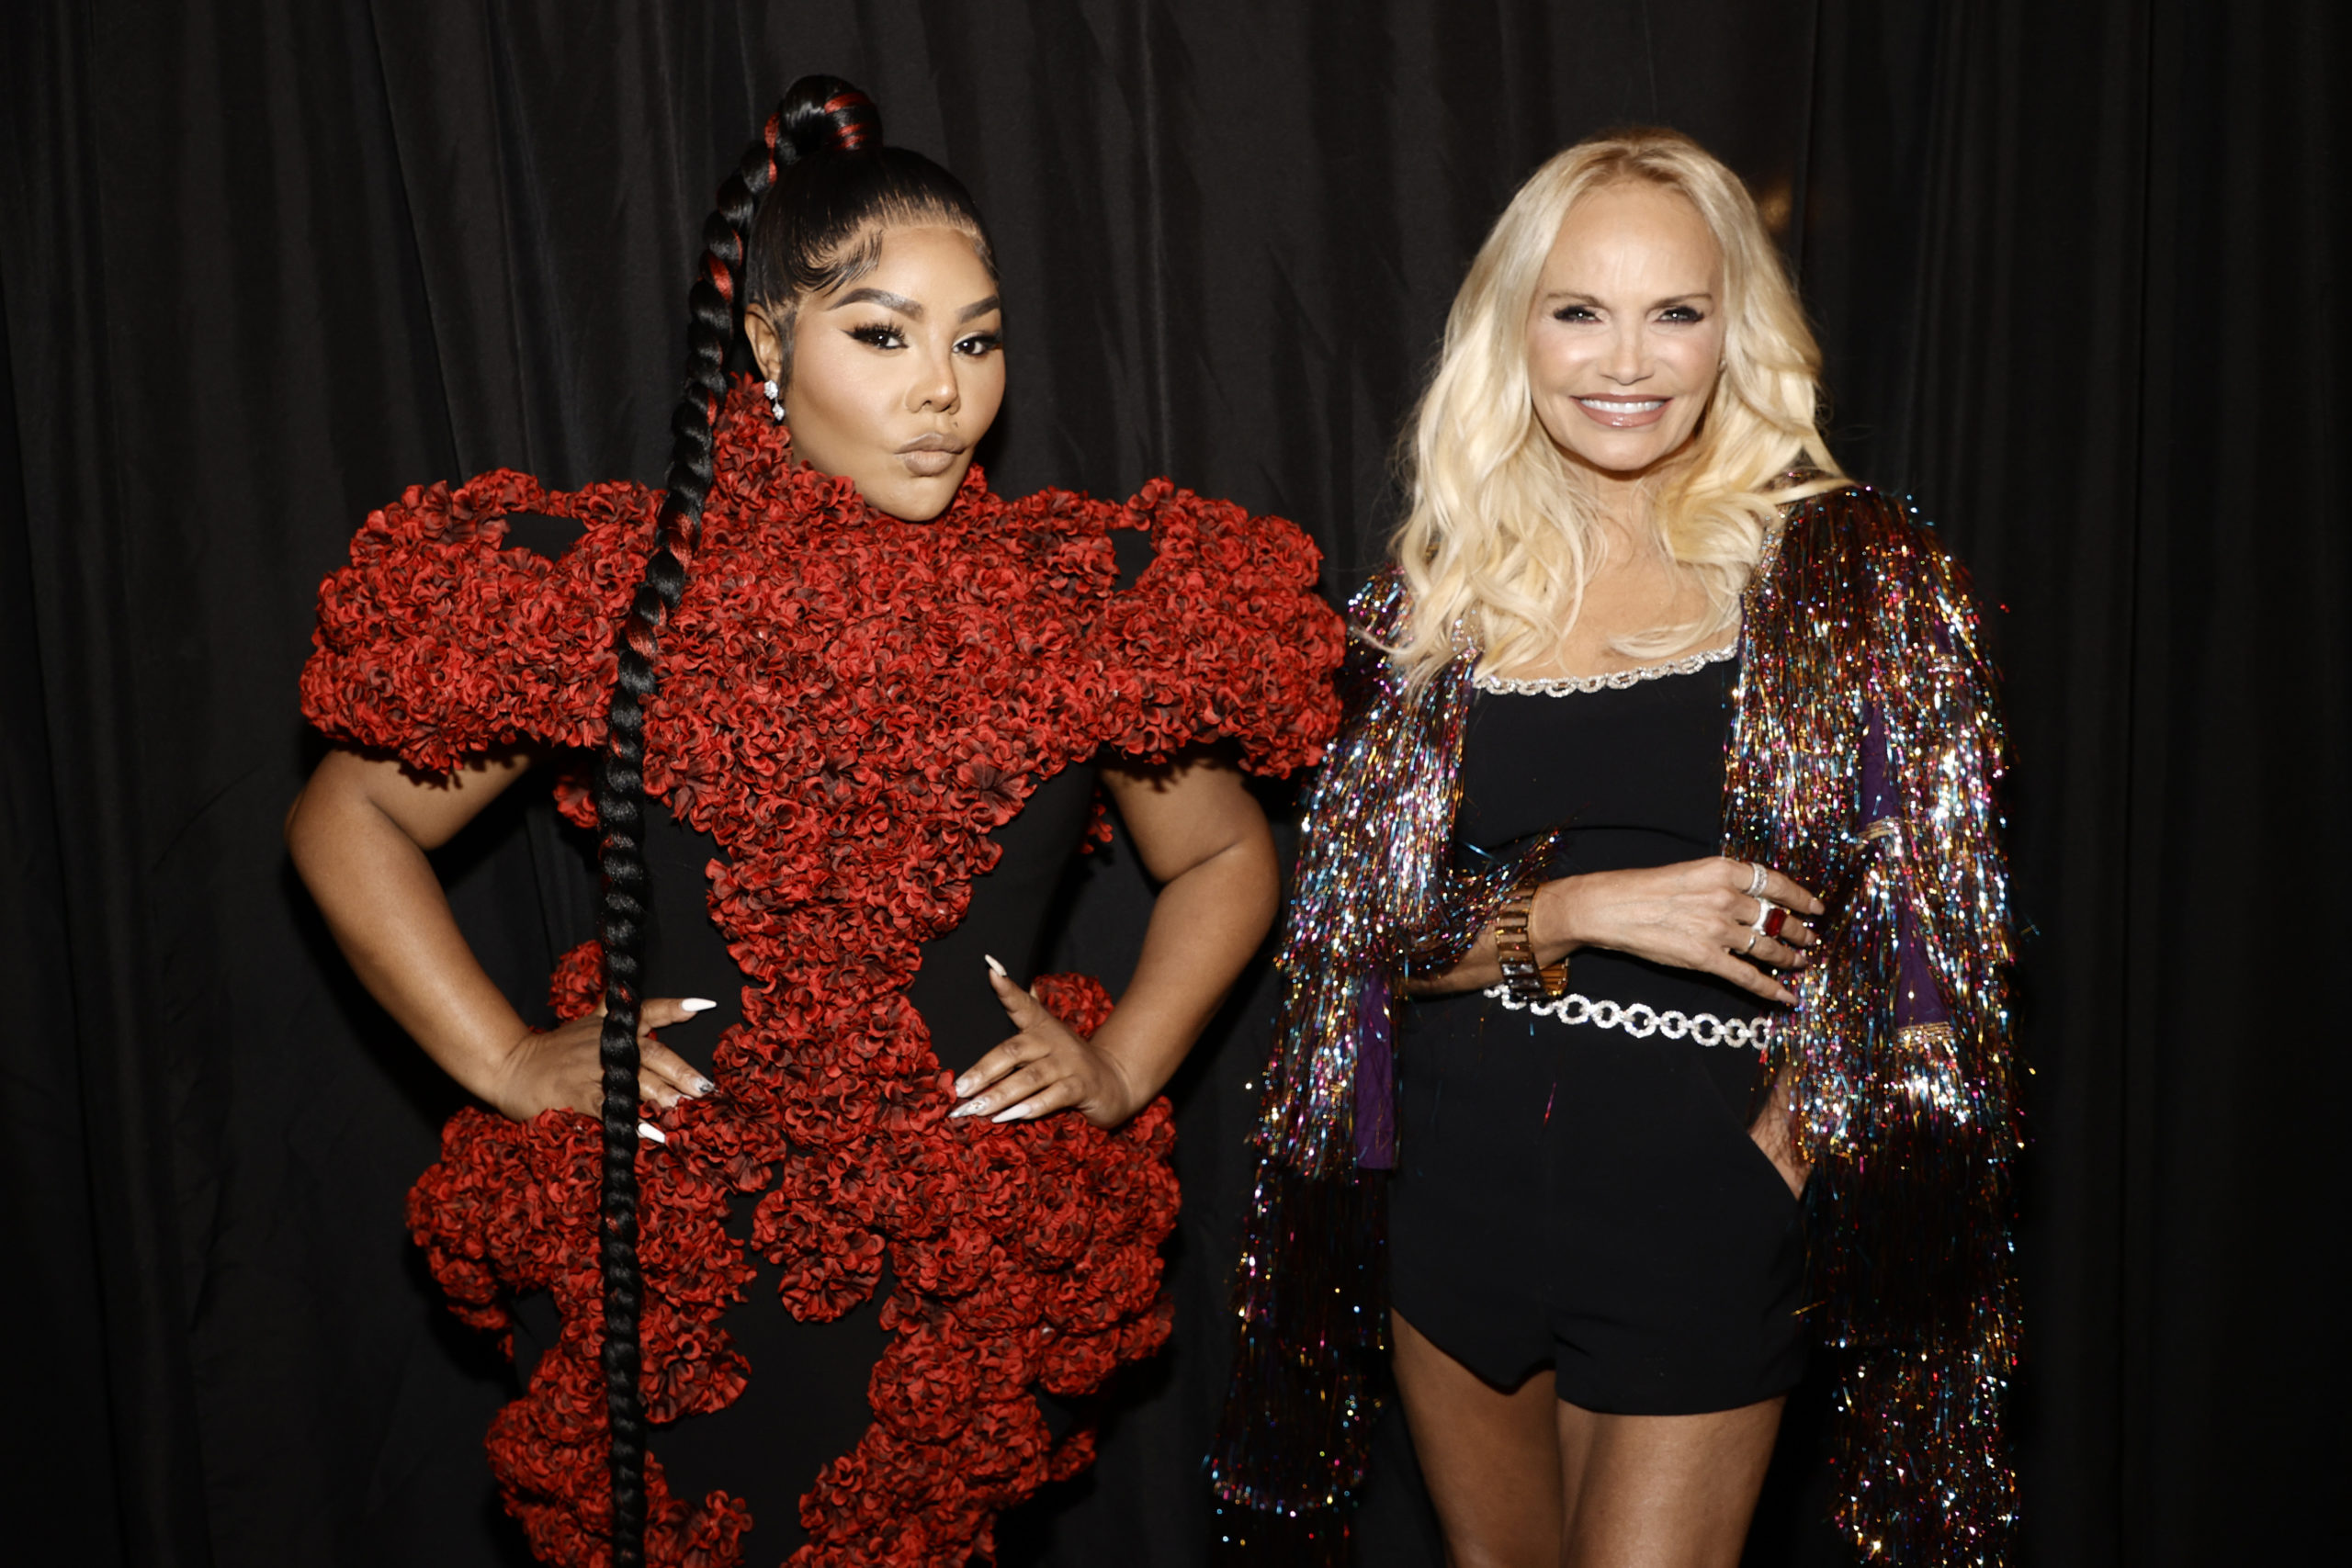 Lil 'Kim and Kristen Chenoweth at the Christian Siriano show